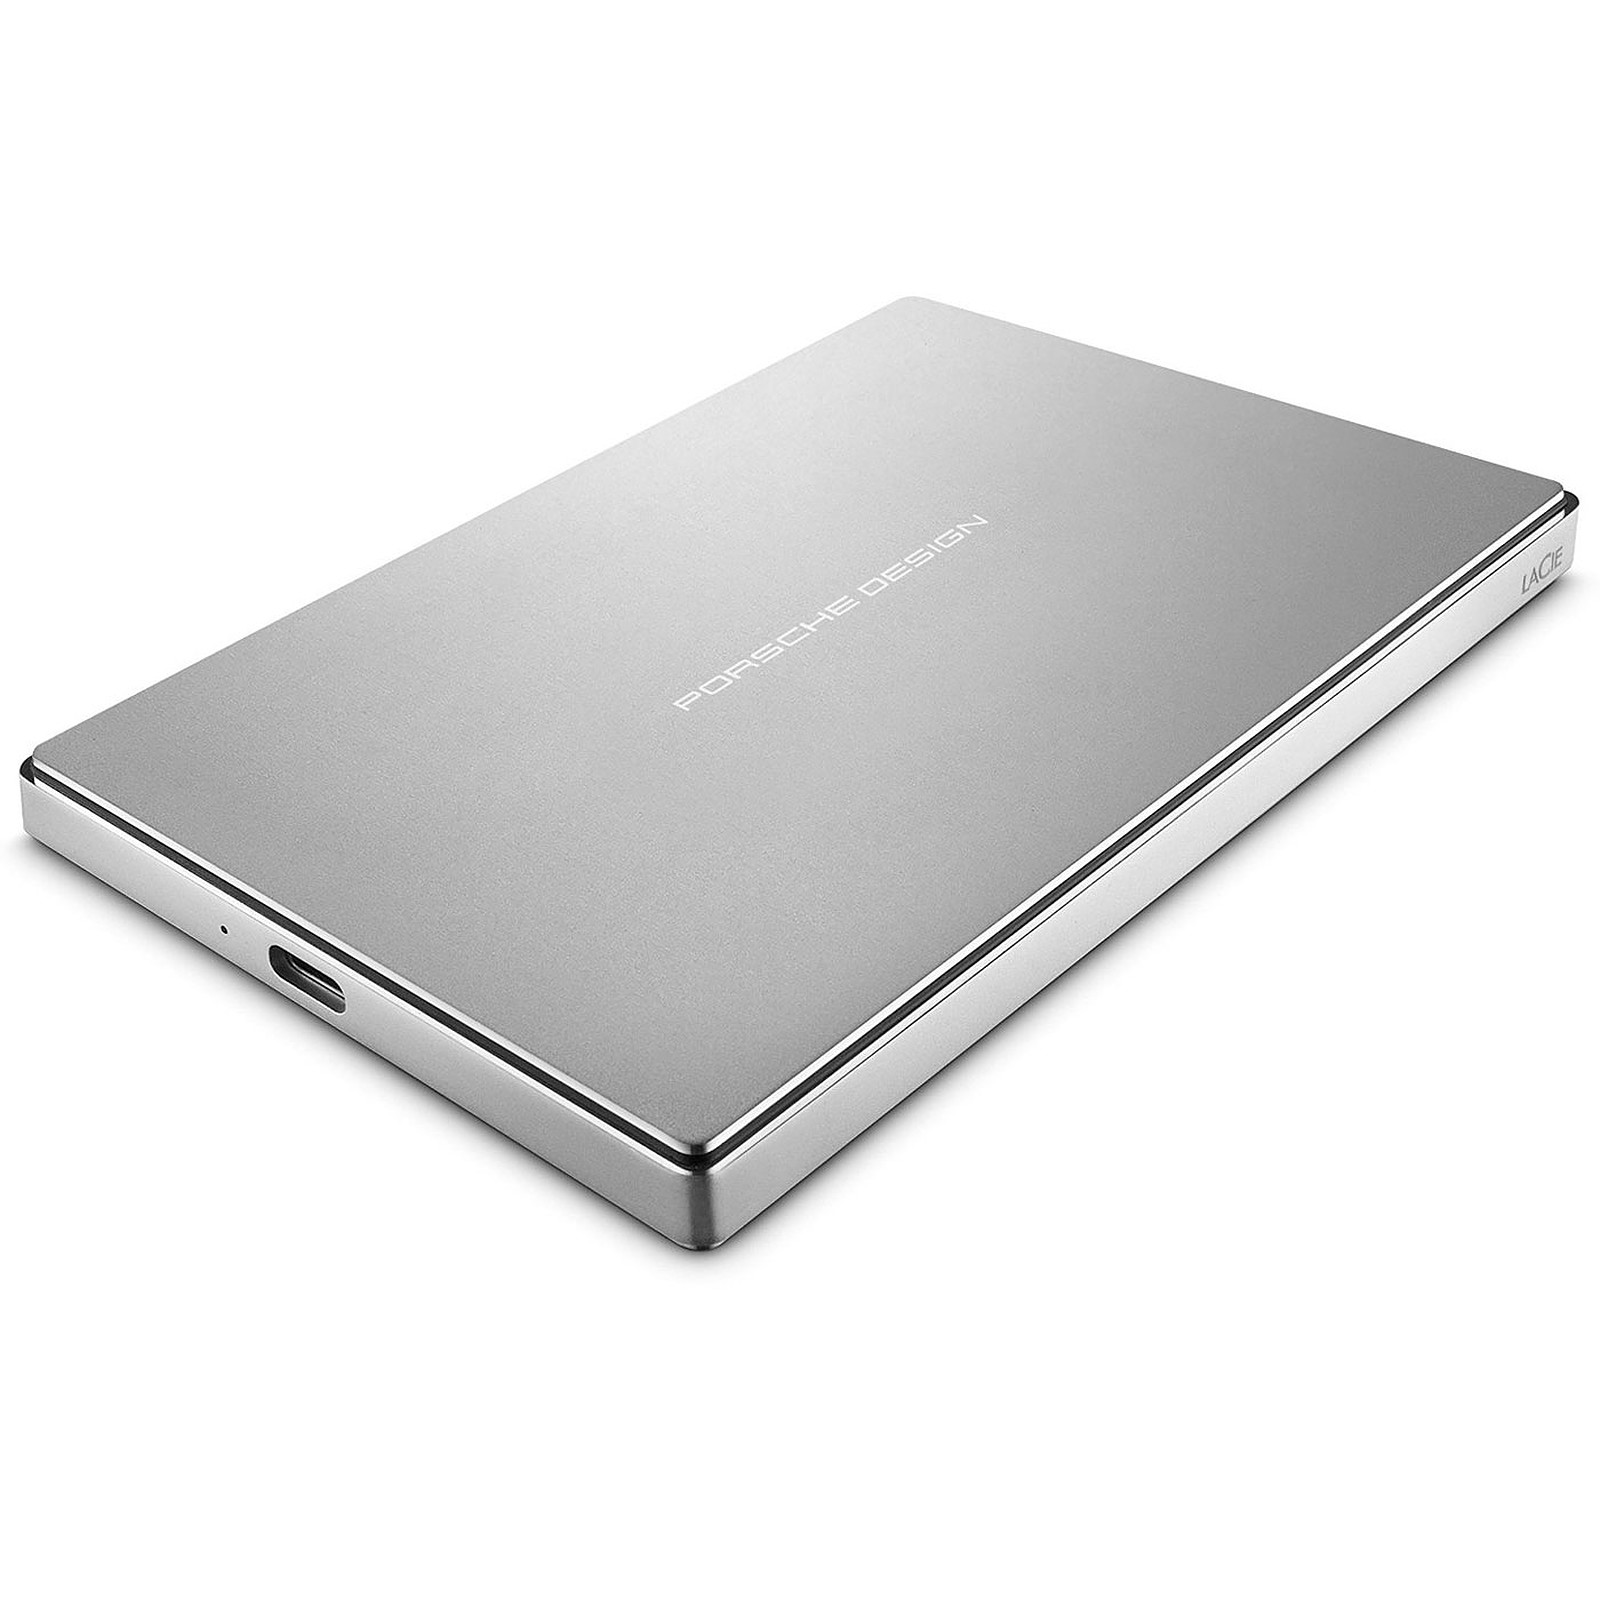 LaCie Porsche Design Mobile Drive 2 To (USB 3.1)